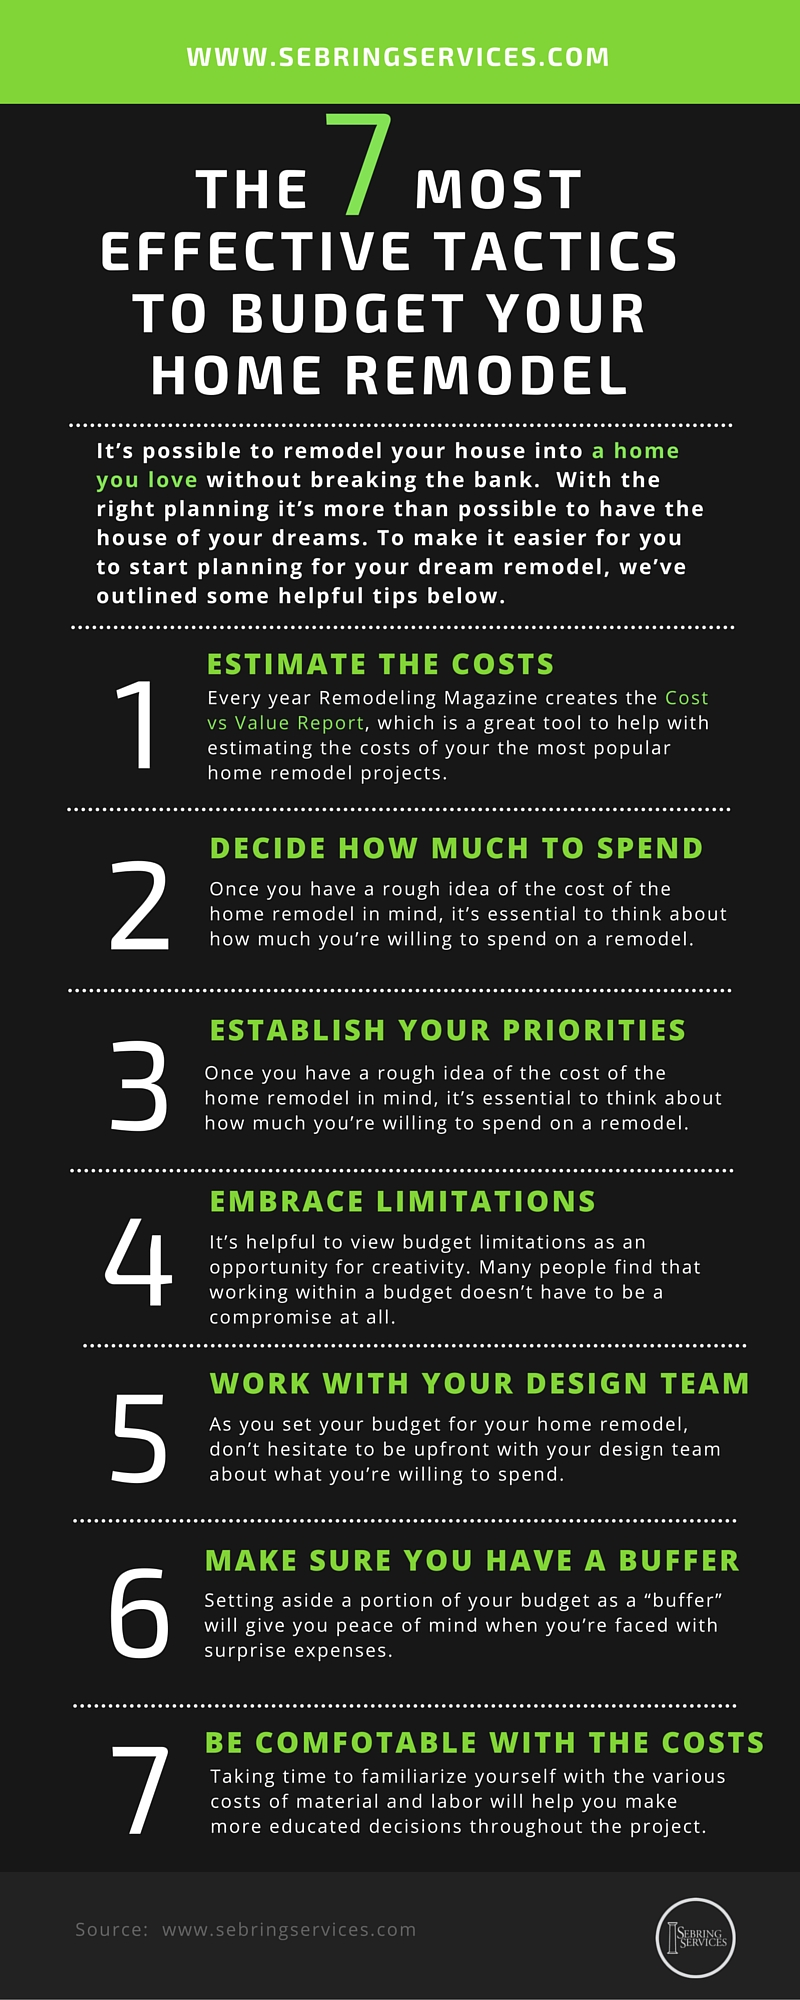 The 7 Most Effective Tactics to Budget Your Home Remodel